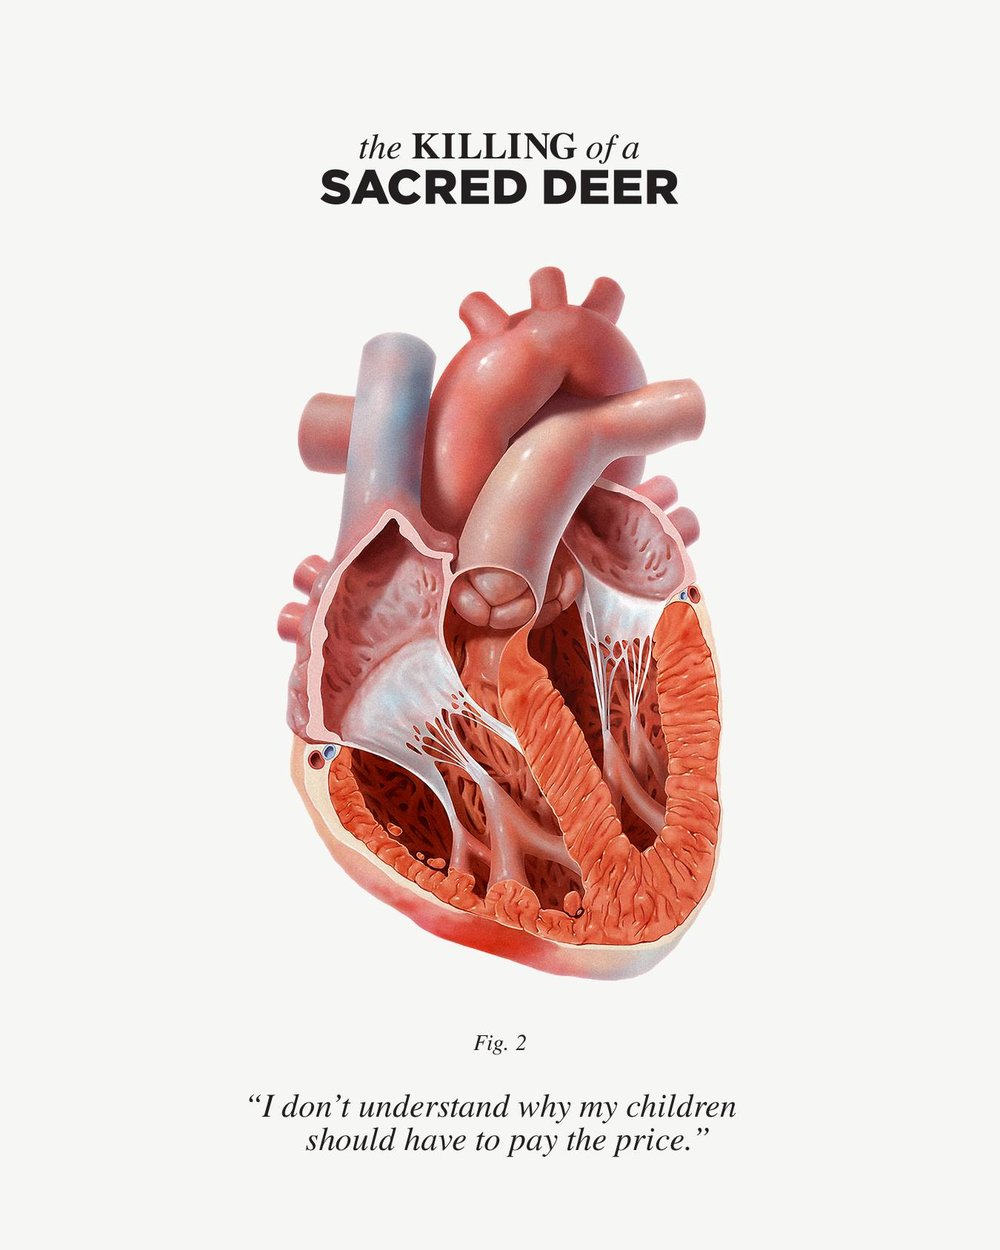 The Killing of a Sacred Deer (2017) - Directed by: Yorgos LanthimosStarring: Colin Farrell, Barry Keoghan, Nicole Kidman, Sunny SuljicRated: RRunning Time: 2h 1mTMM Score: 5 StarsSTRENGTHS: Acting, Concept, ThemesWEAKNESSES: Story, Slow